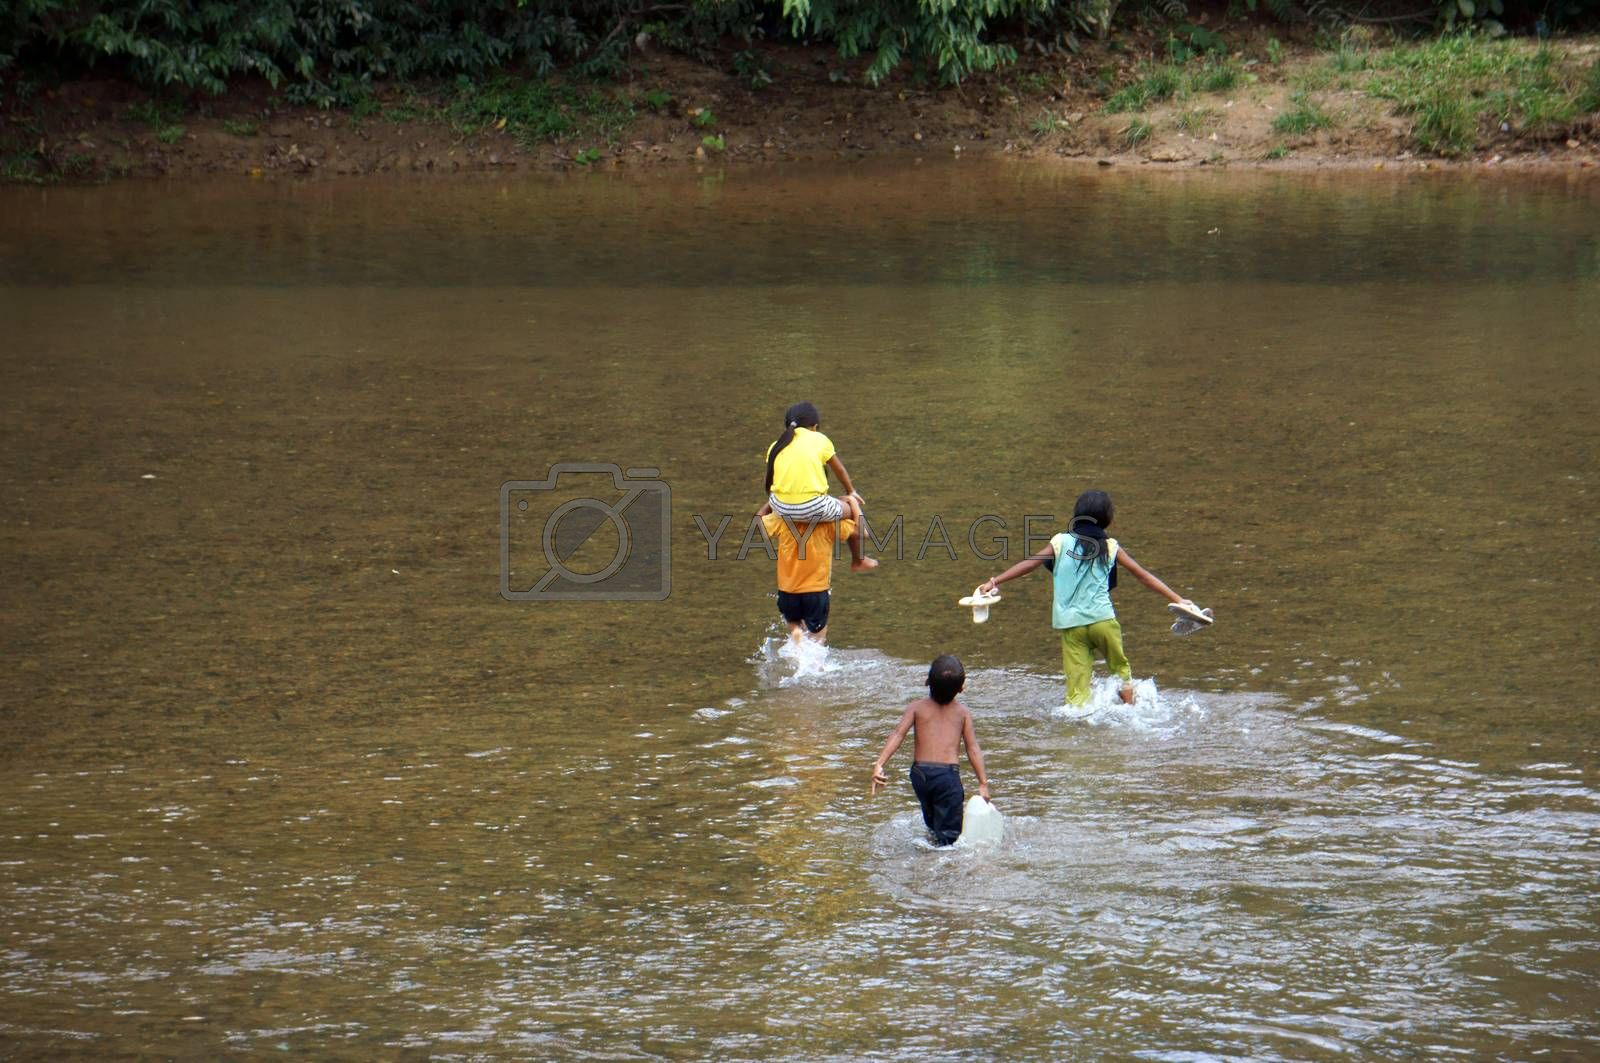 KHANH HOA, VIET NAM- FEBRUARY 5: Chidren  across a stream, this is warning about  children's drowning  situation at countryside, Khanh Hoa, February 5, 2013